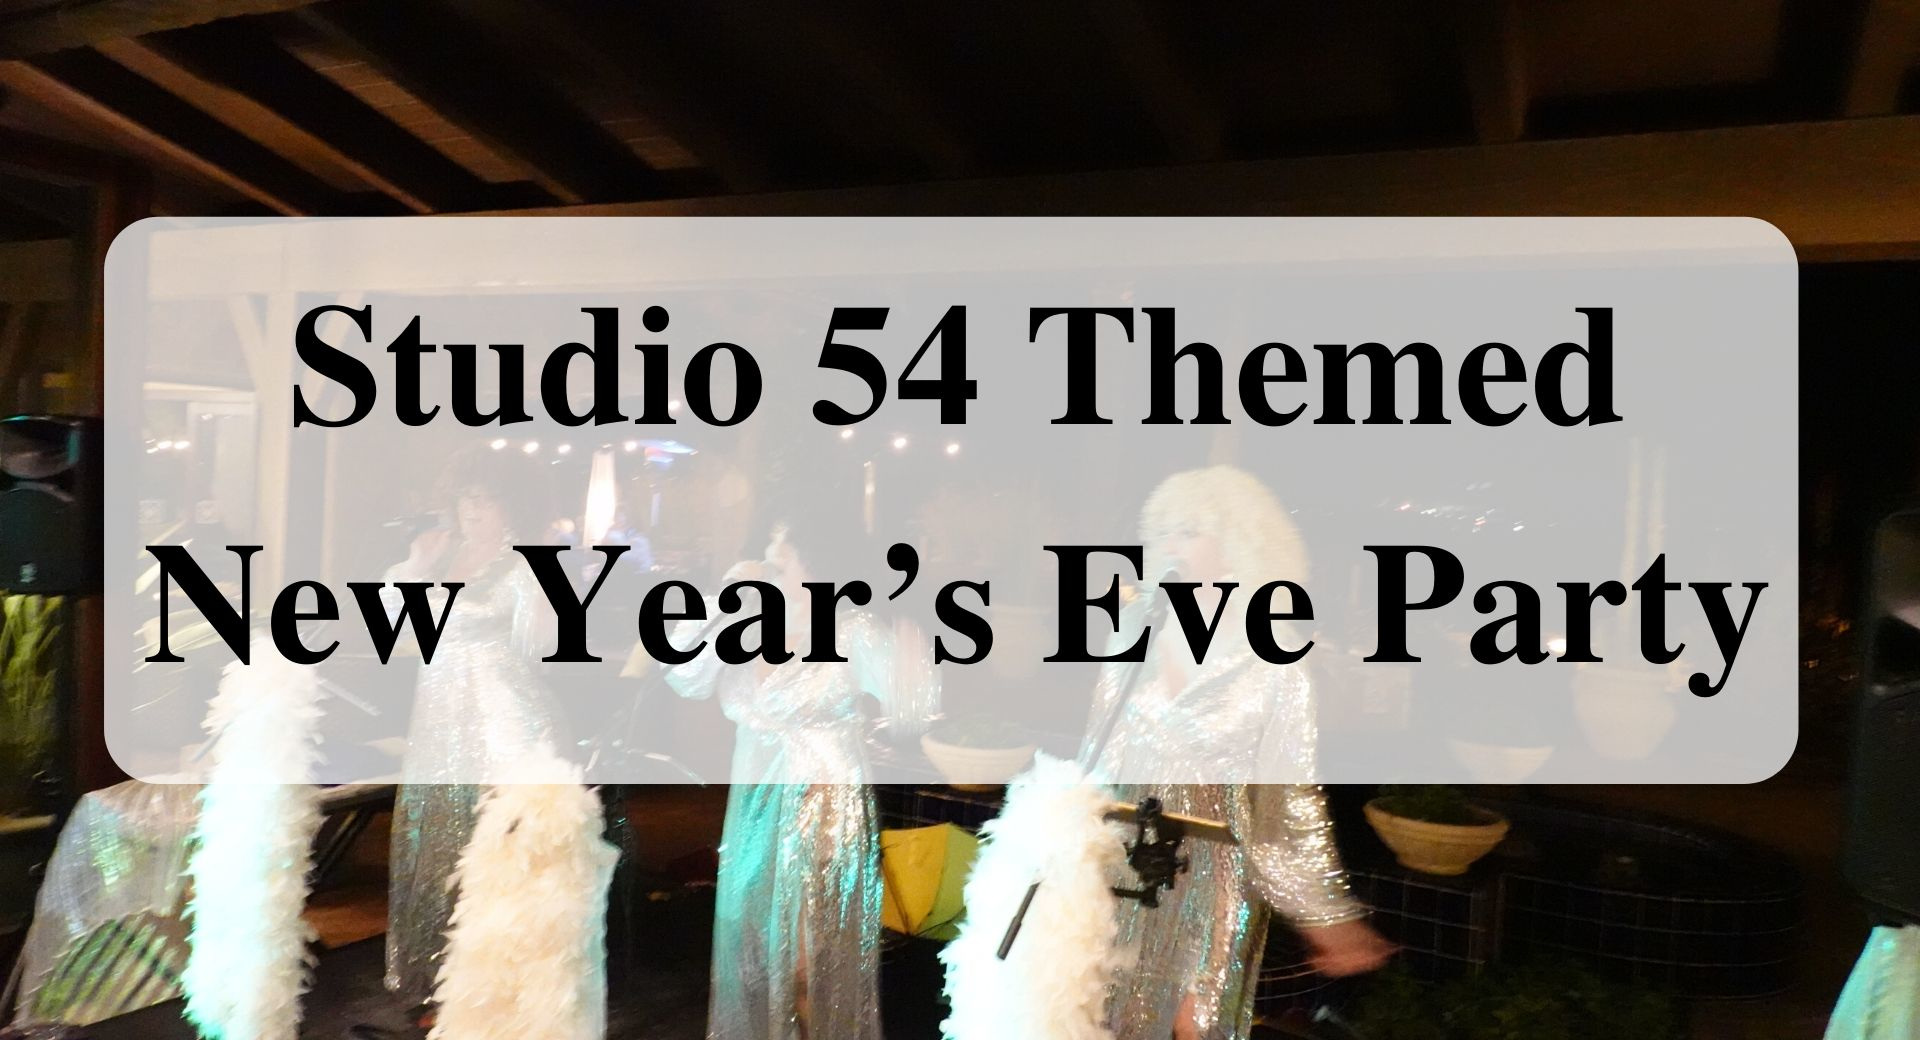 Studio 54 Themed New Year's Eve Party forever sabbatical main